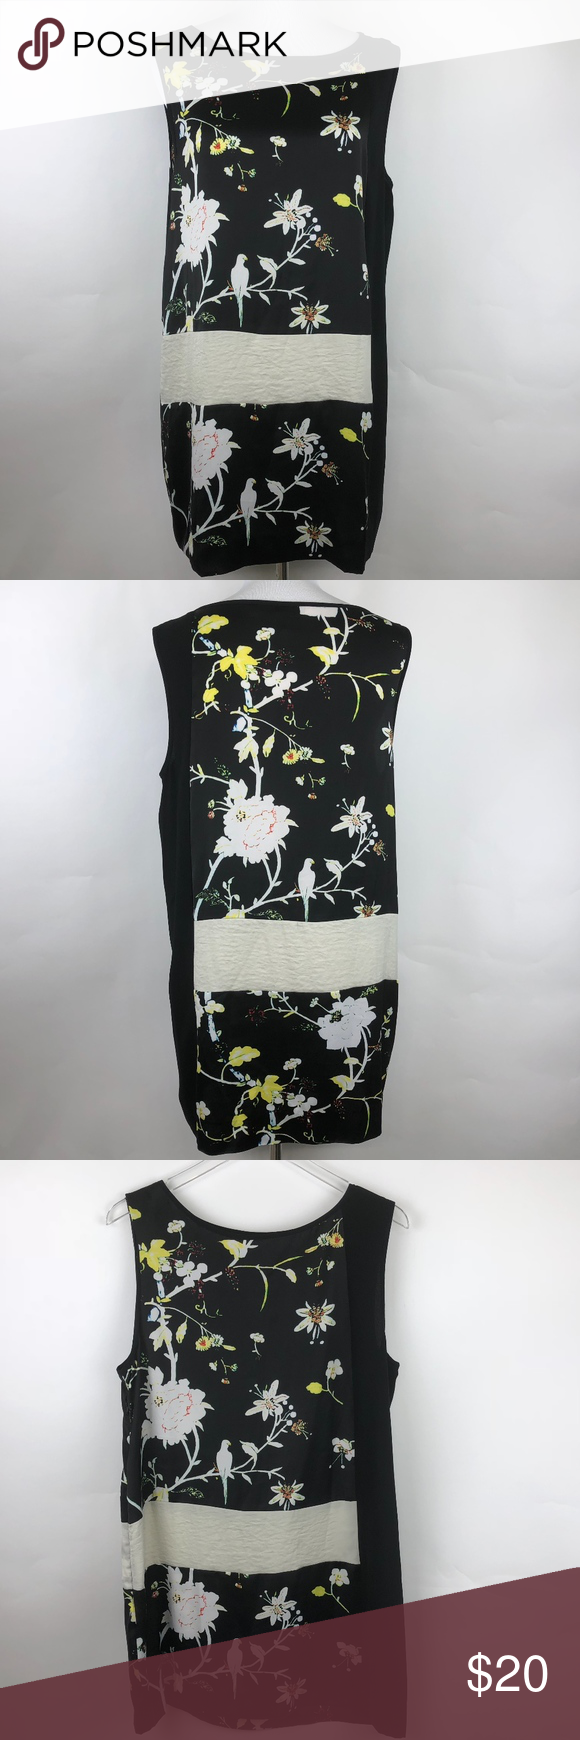 f023ca8935 Rachel Roy Shift Dress Sleeveless Birds Black Beautiful dress with a bird  and flower print. Sleeveless. Side zipper. ◇ Pit to pit 20 ◇ Total length  33